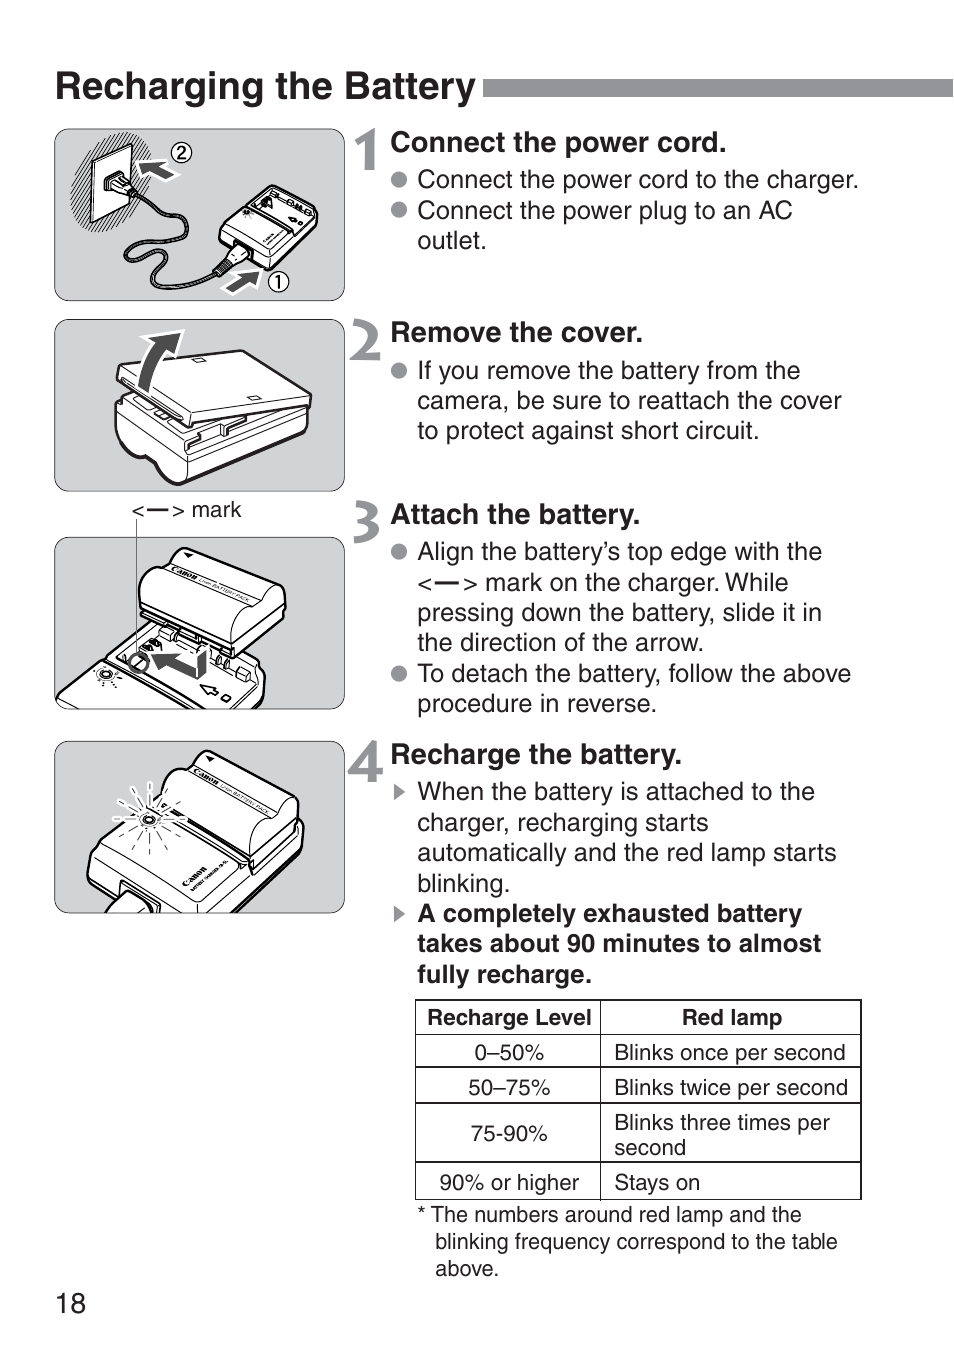 recharging the battery canon ds6041 user manual page 18 140 rh manualsdir com Canon Digital Rebel DS6041 Canon EOS Rebel XS